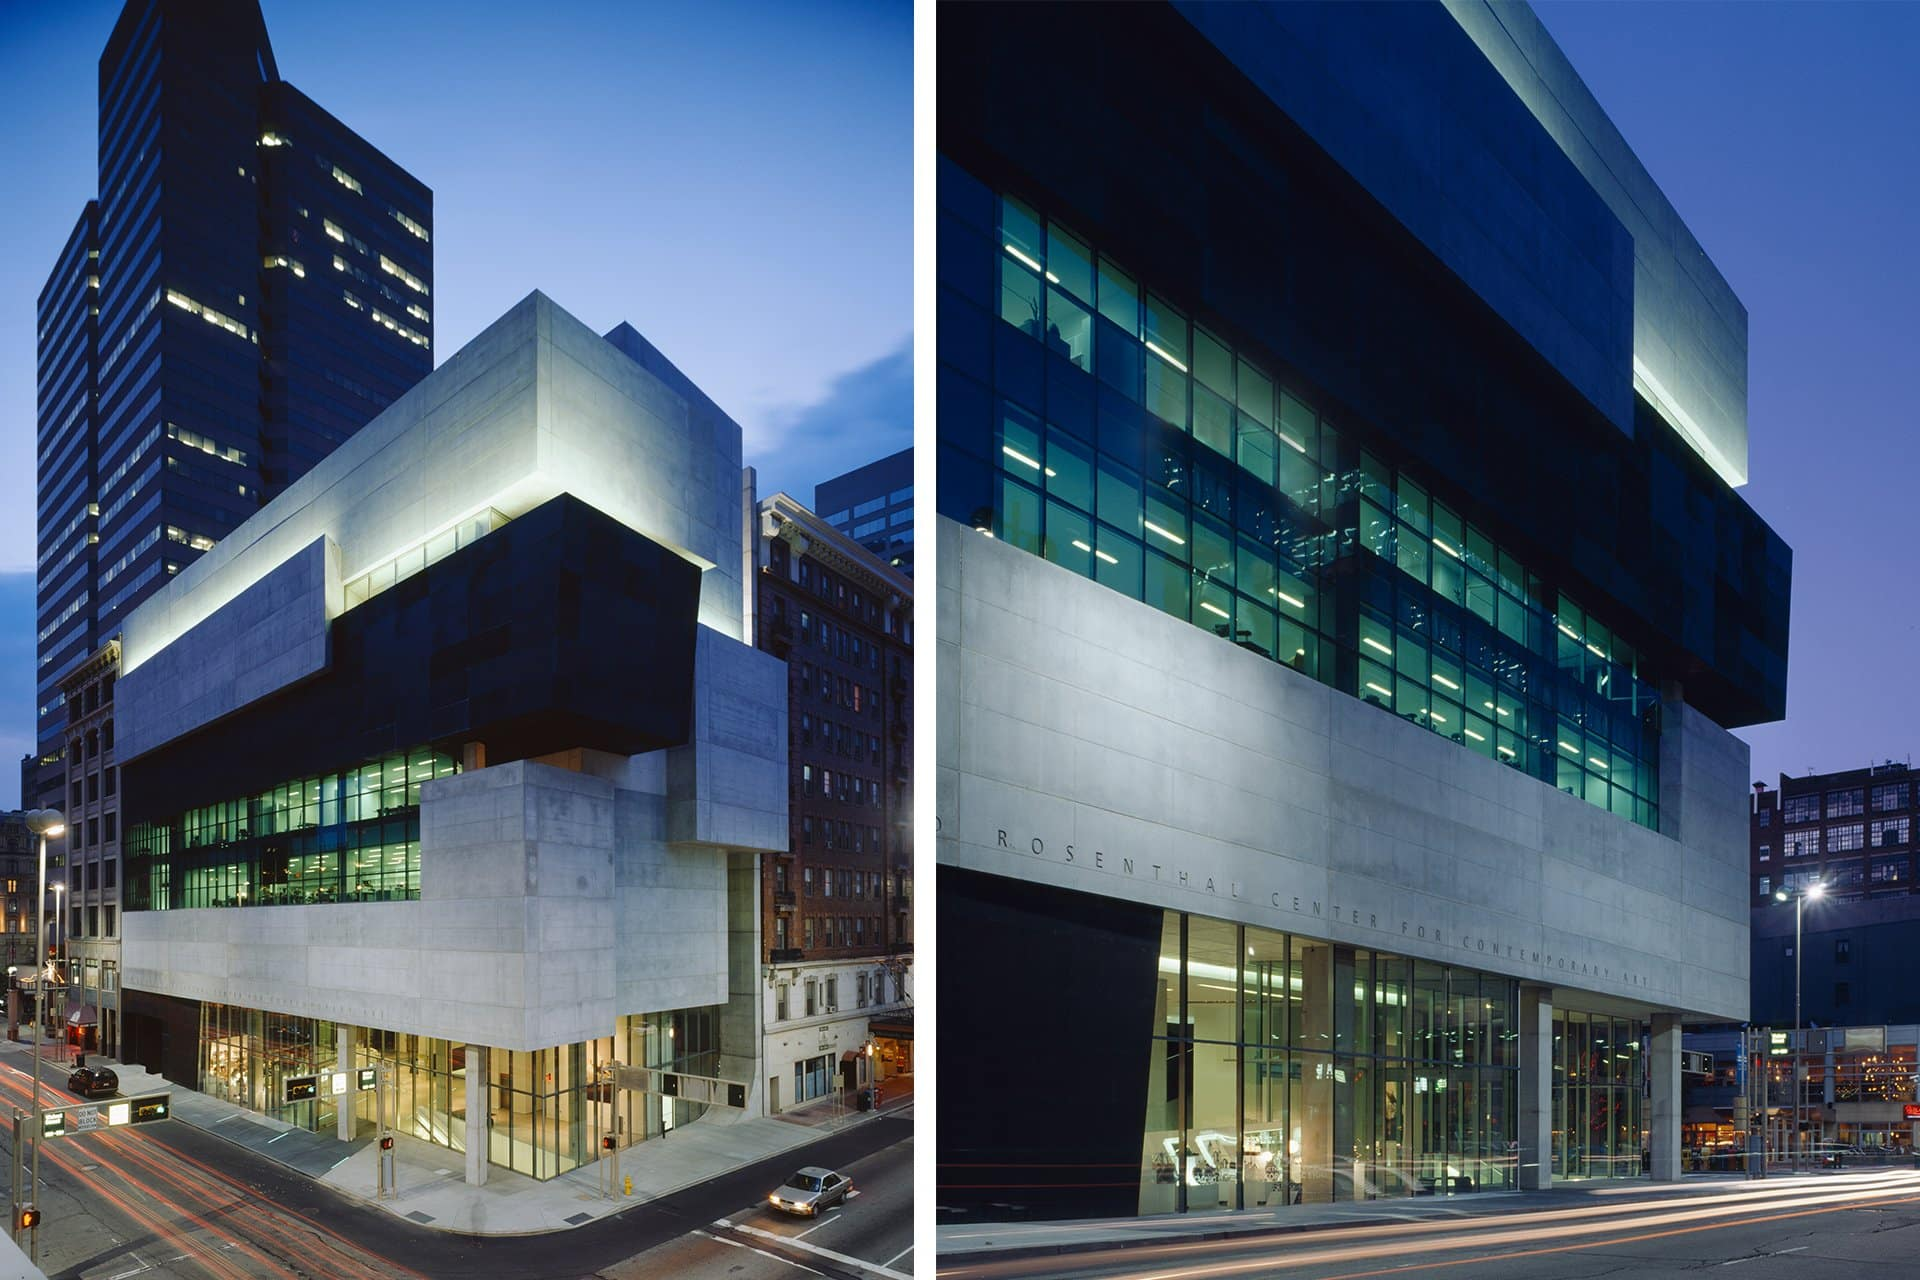 Architectural Lighting Design Rosenthal Center For Contemporary Art OVI Chinese